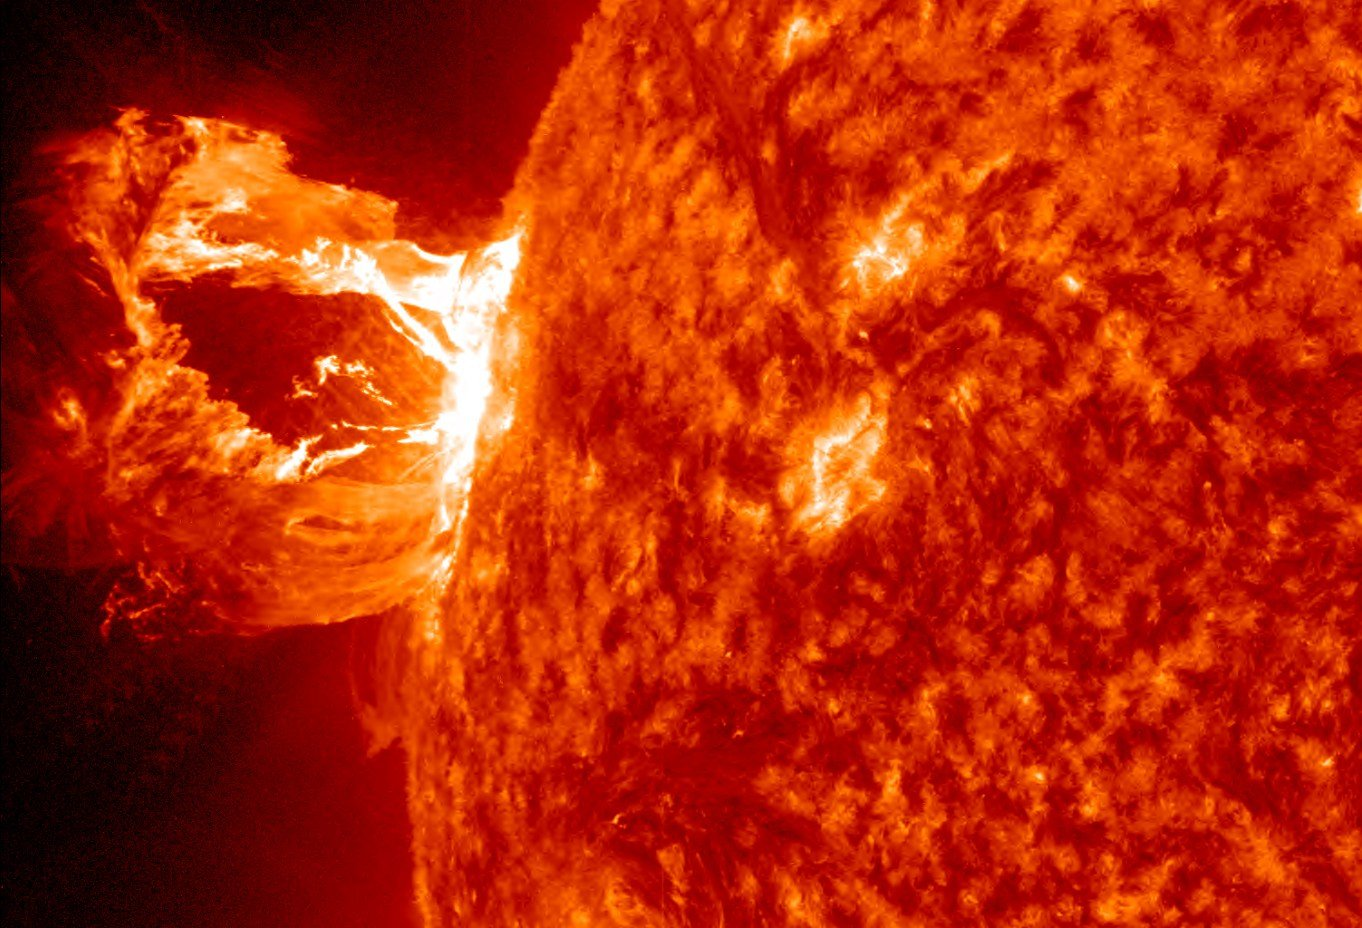 Image of the sun showing a CME. (Source: NASA)